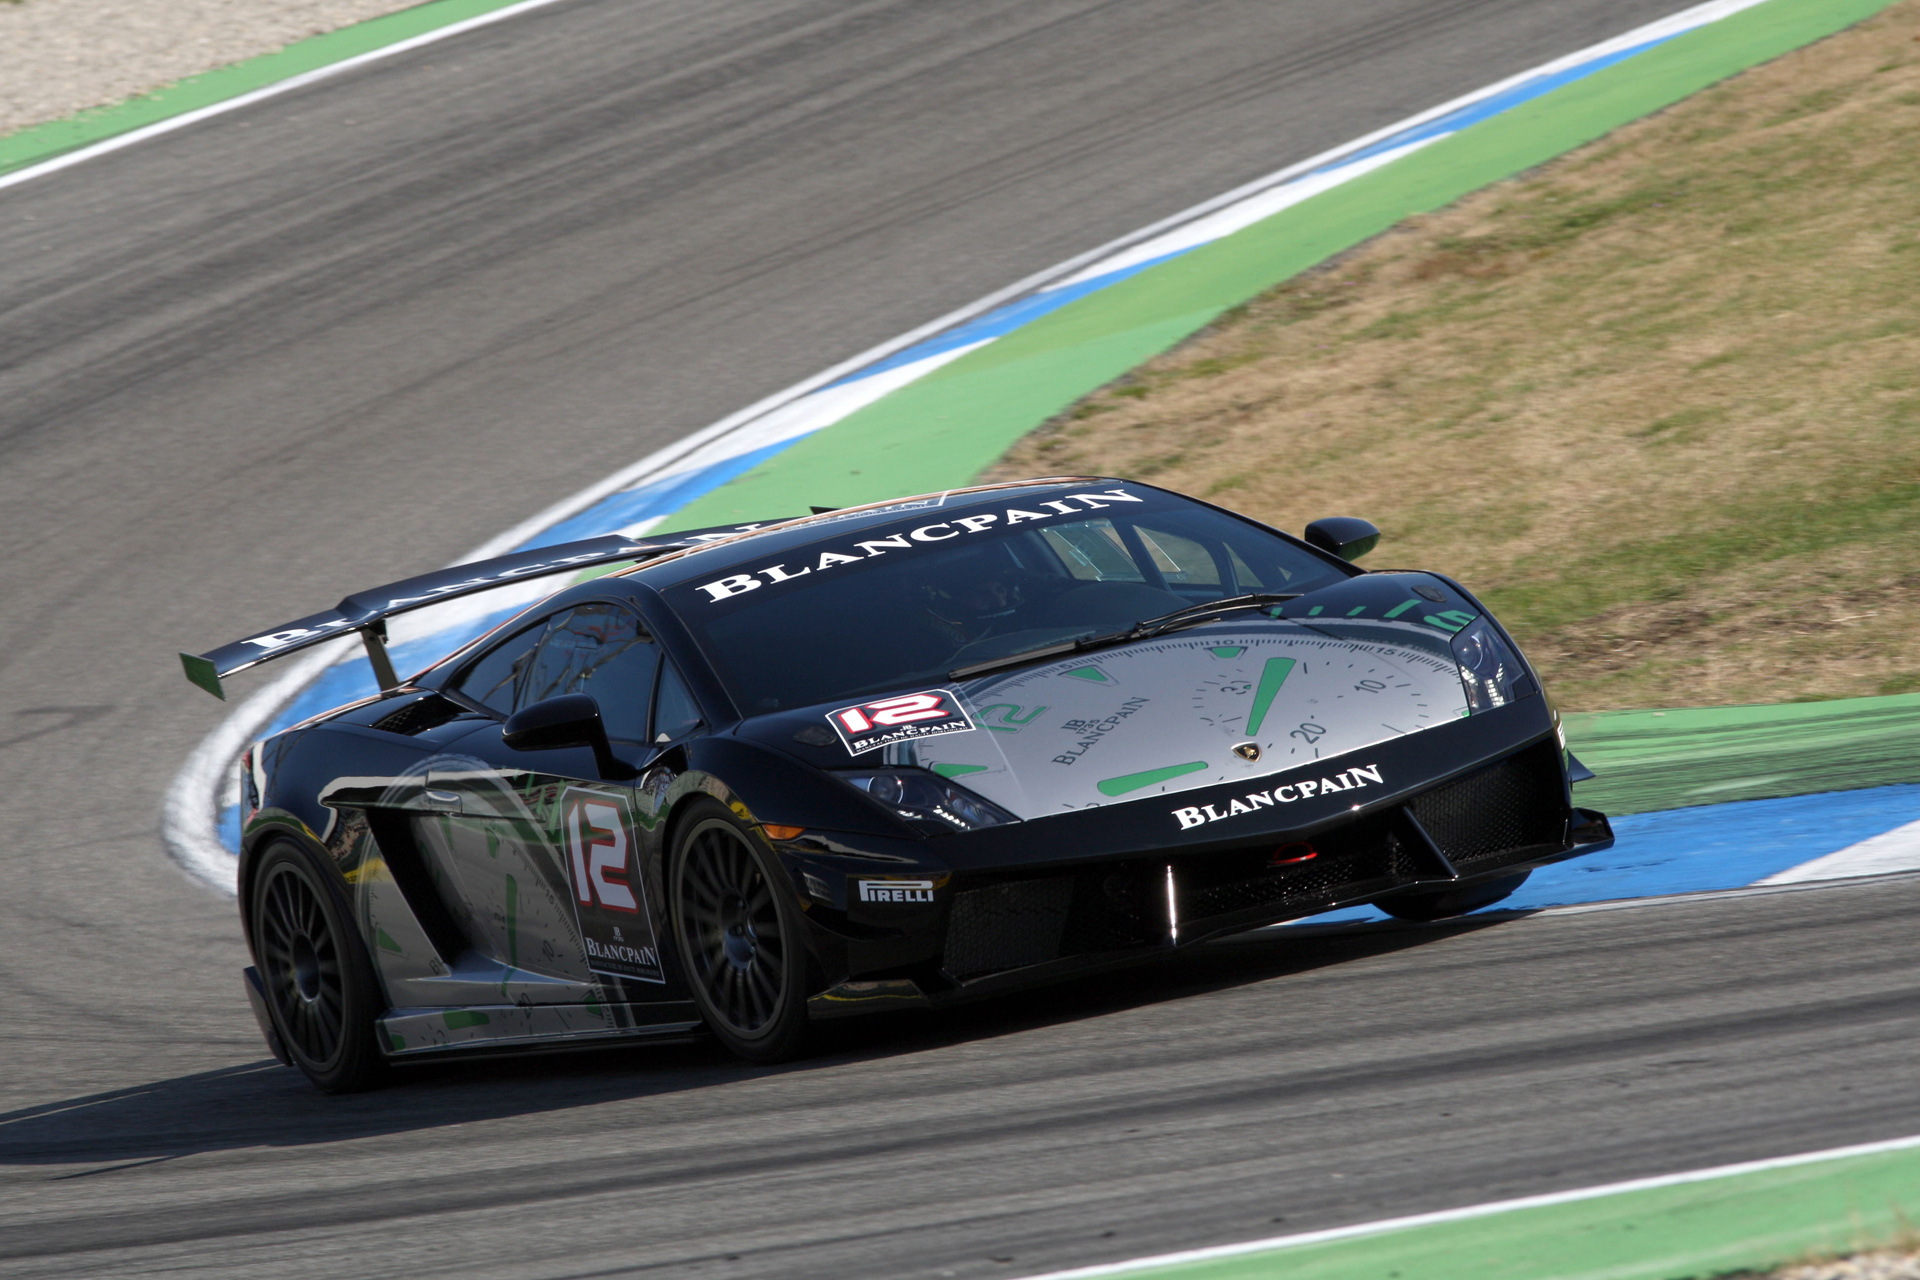 Lamborghini Gallardo LP560-4 Super Trofeo photo 71393